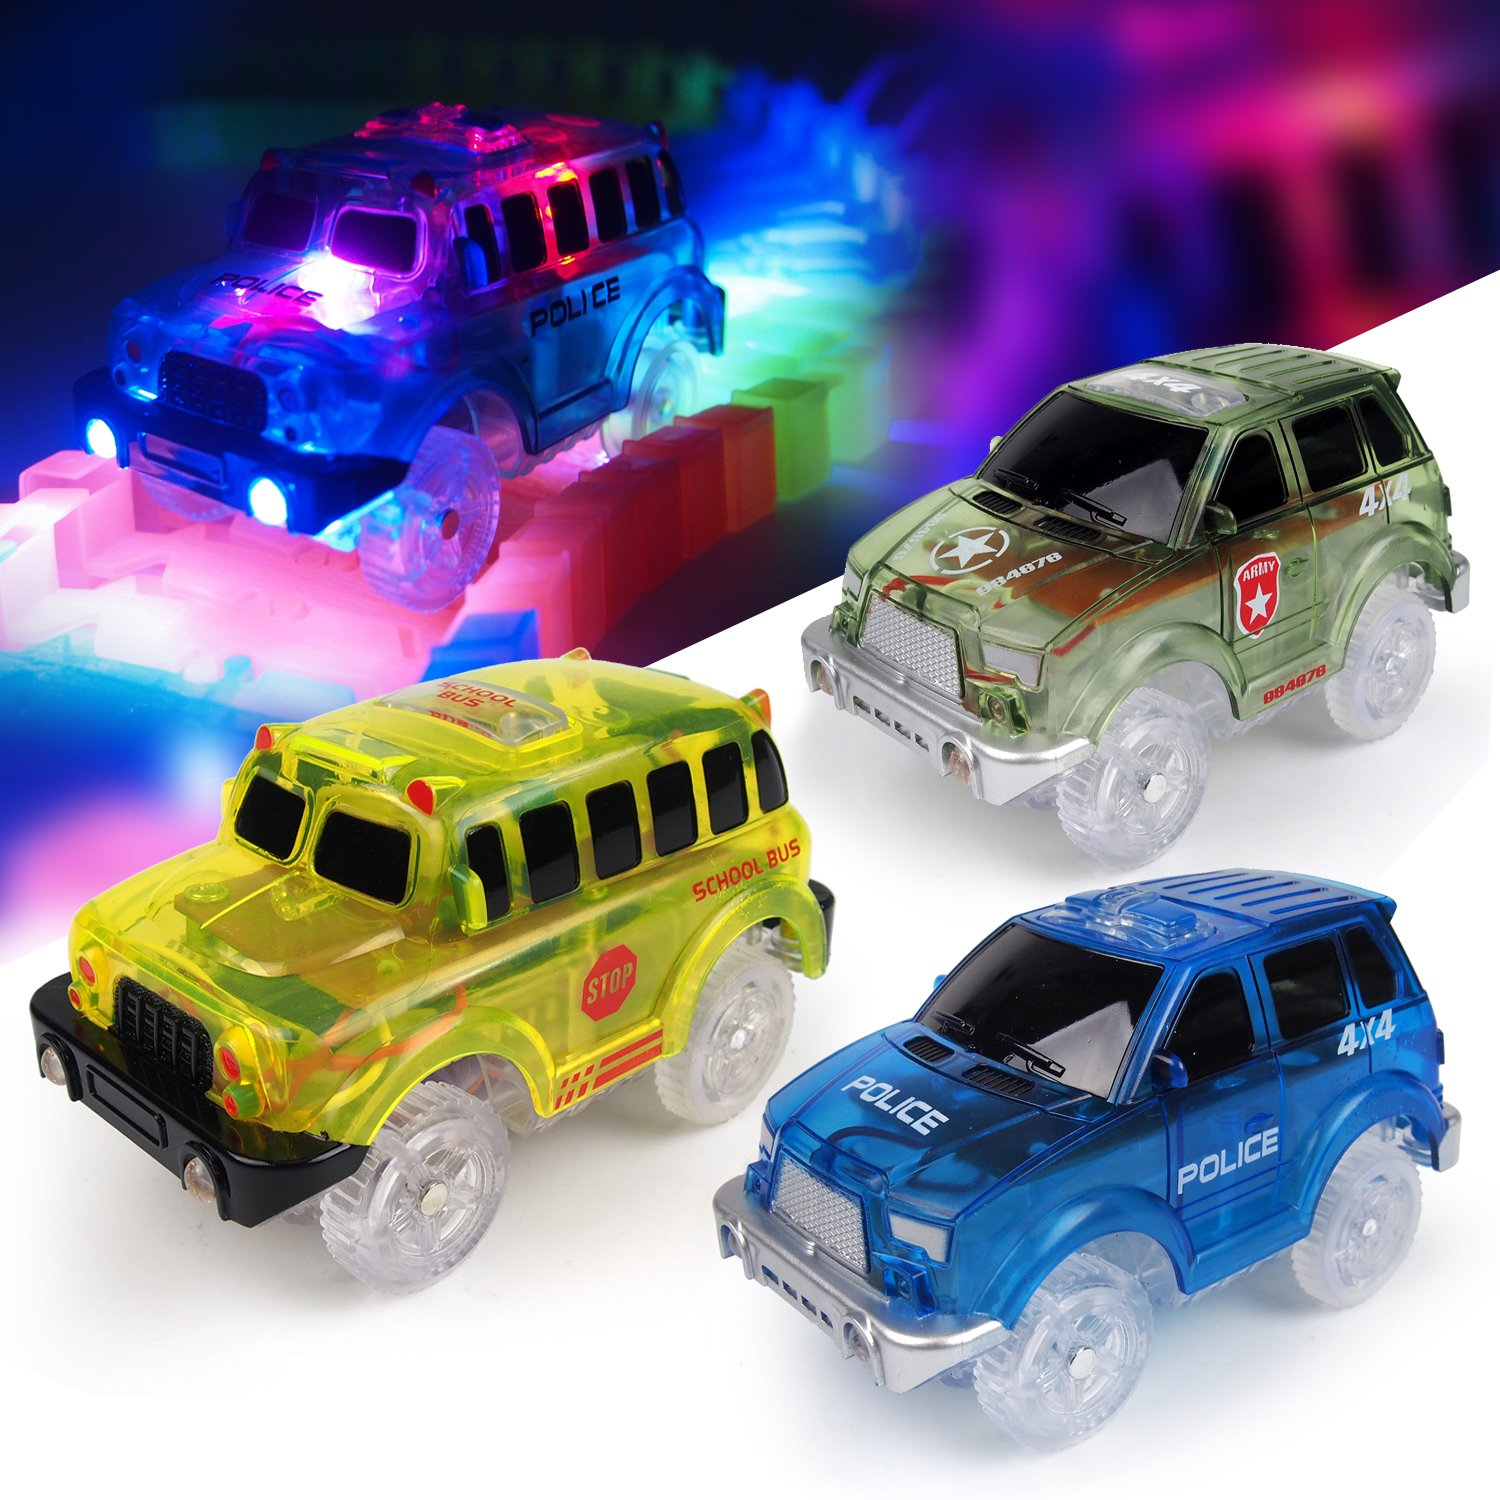 [3-Pack] Light-Up Replacement Track Race Car Toy | 4X4 Racing Cars w/ 5 LED Lights | INDEPENDENT & TRACK PLAY | Track Accessories | Compatible with Most Tracks | Endless Fun for Boys & Girls